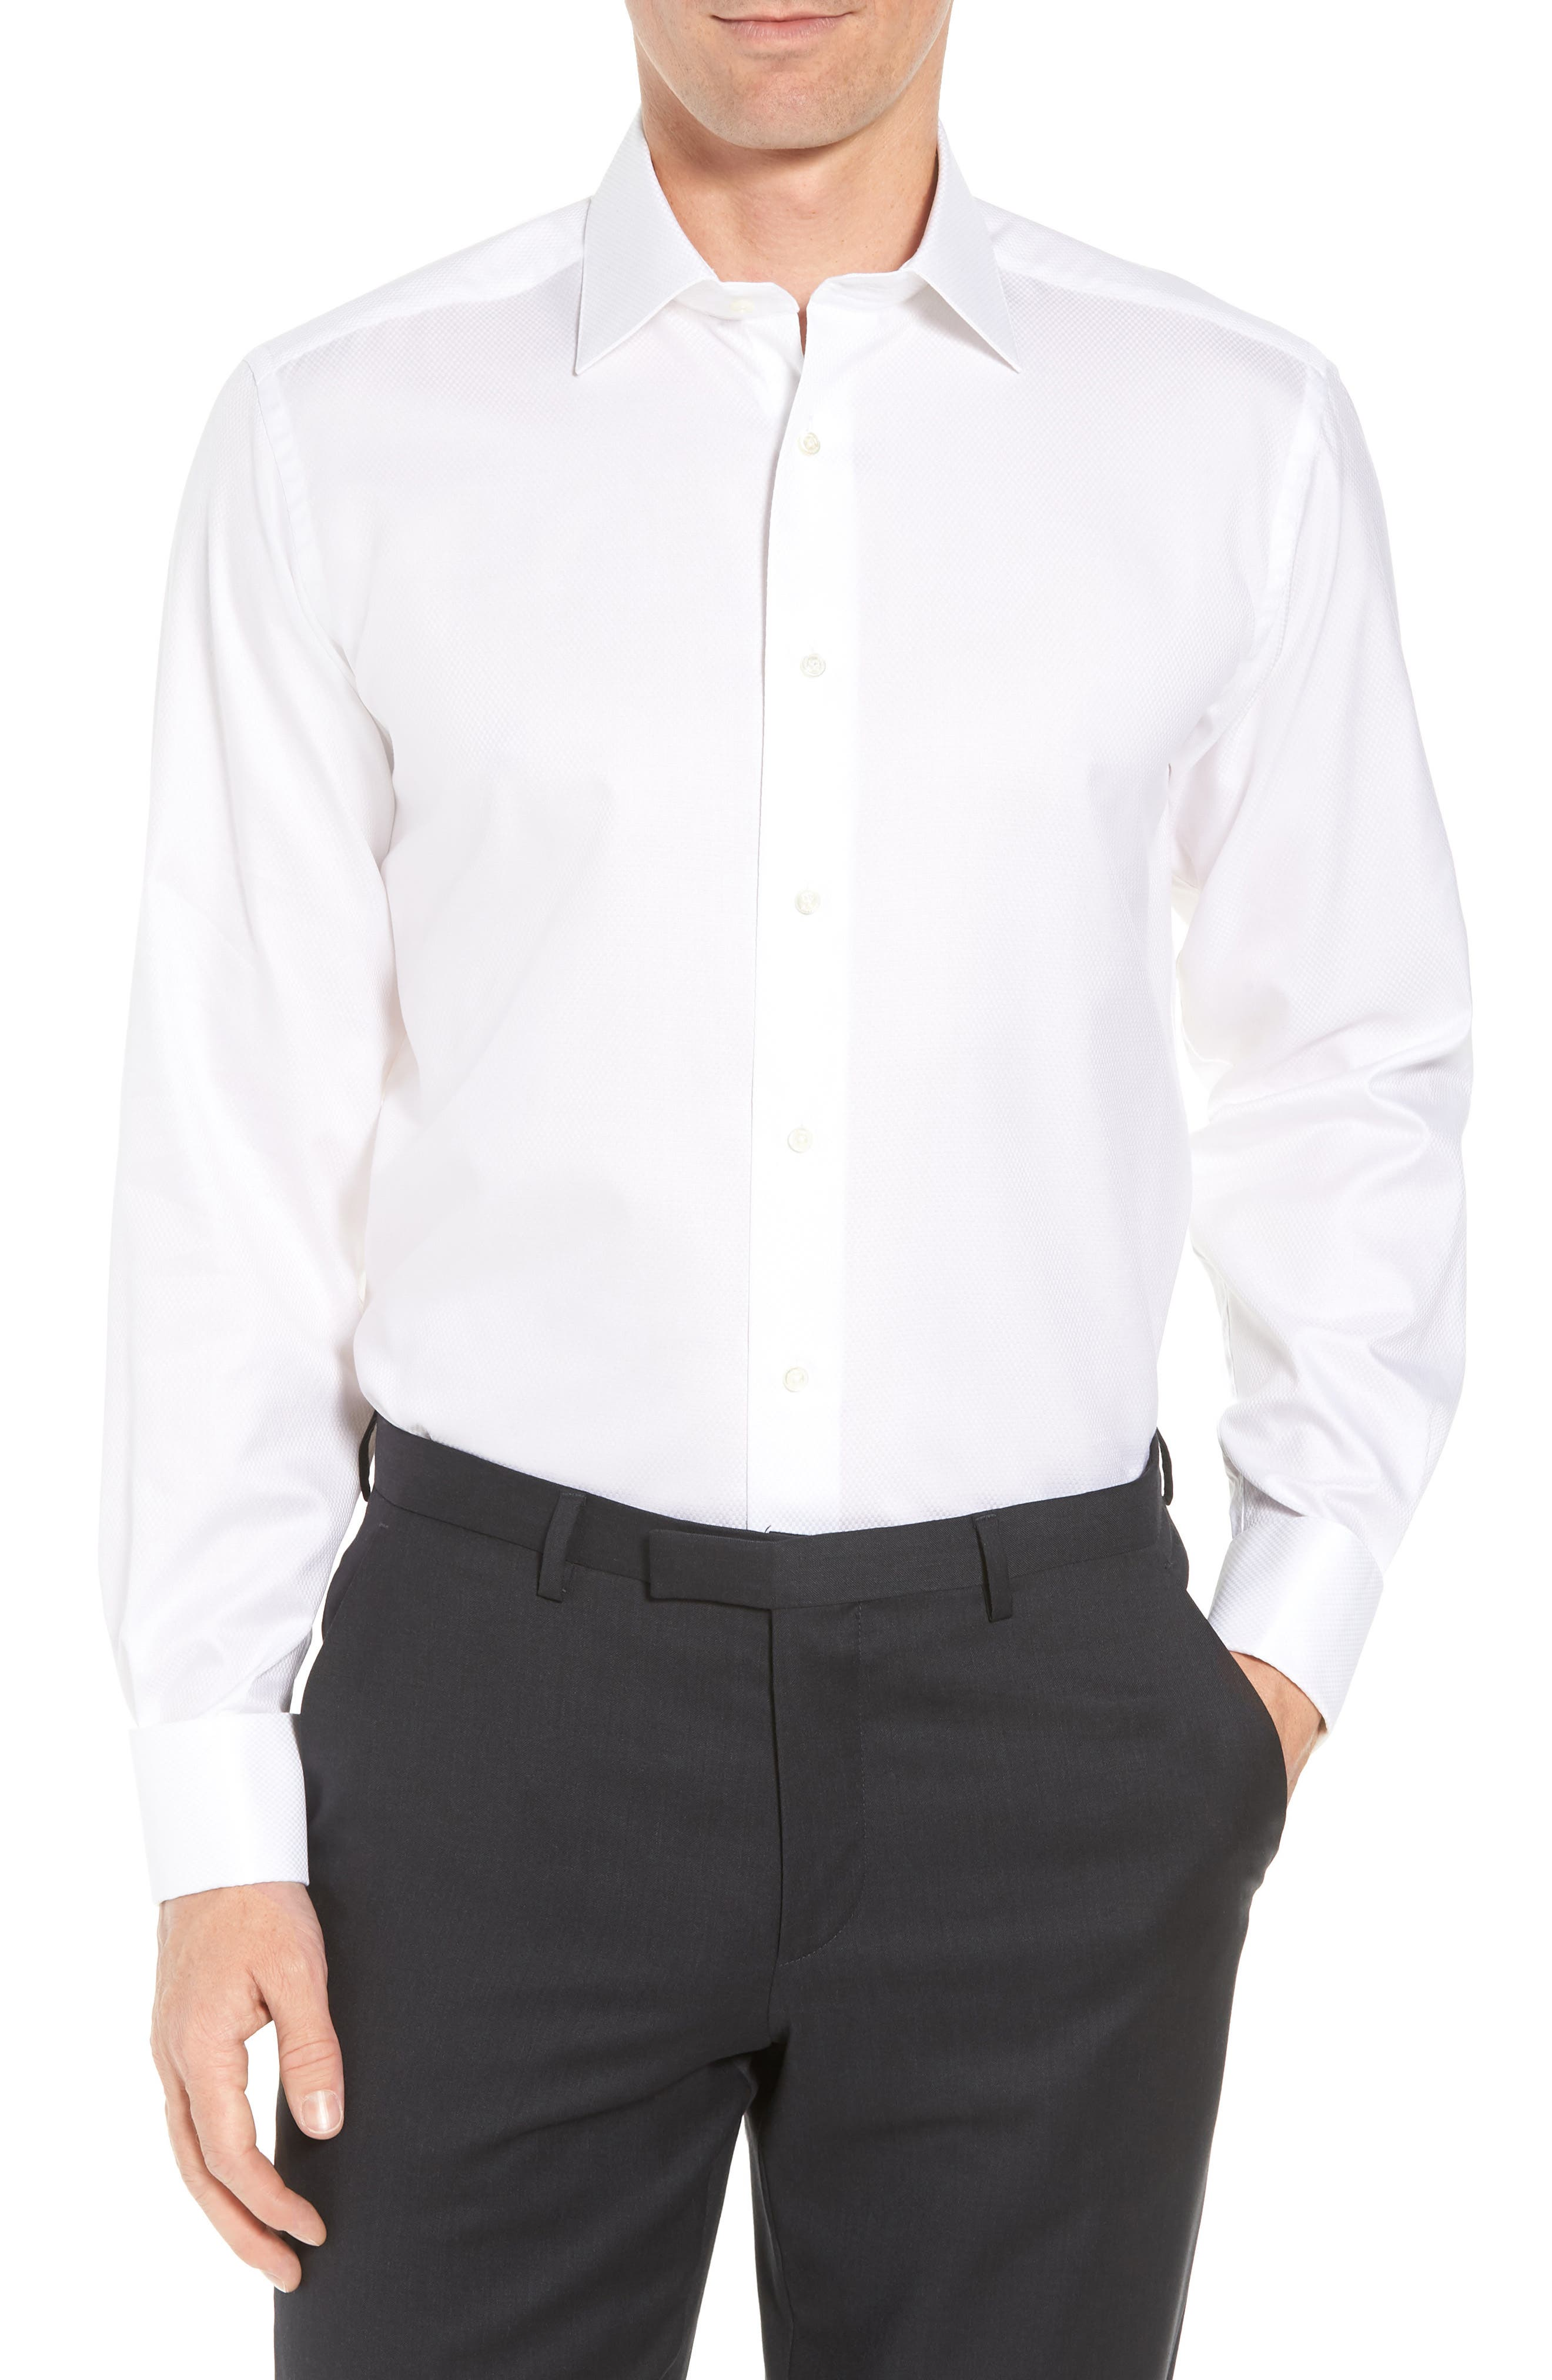 Main Image - David Donahue Regular Fit Solid French Cuff Tuxedo Shirt